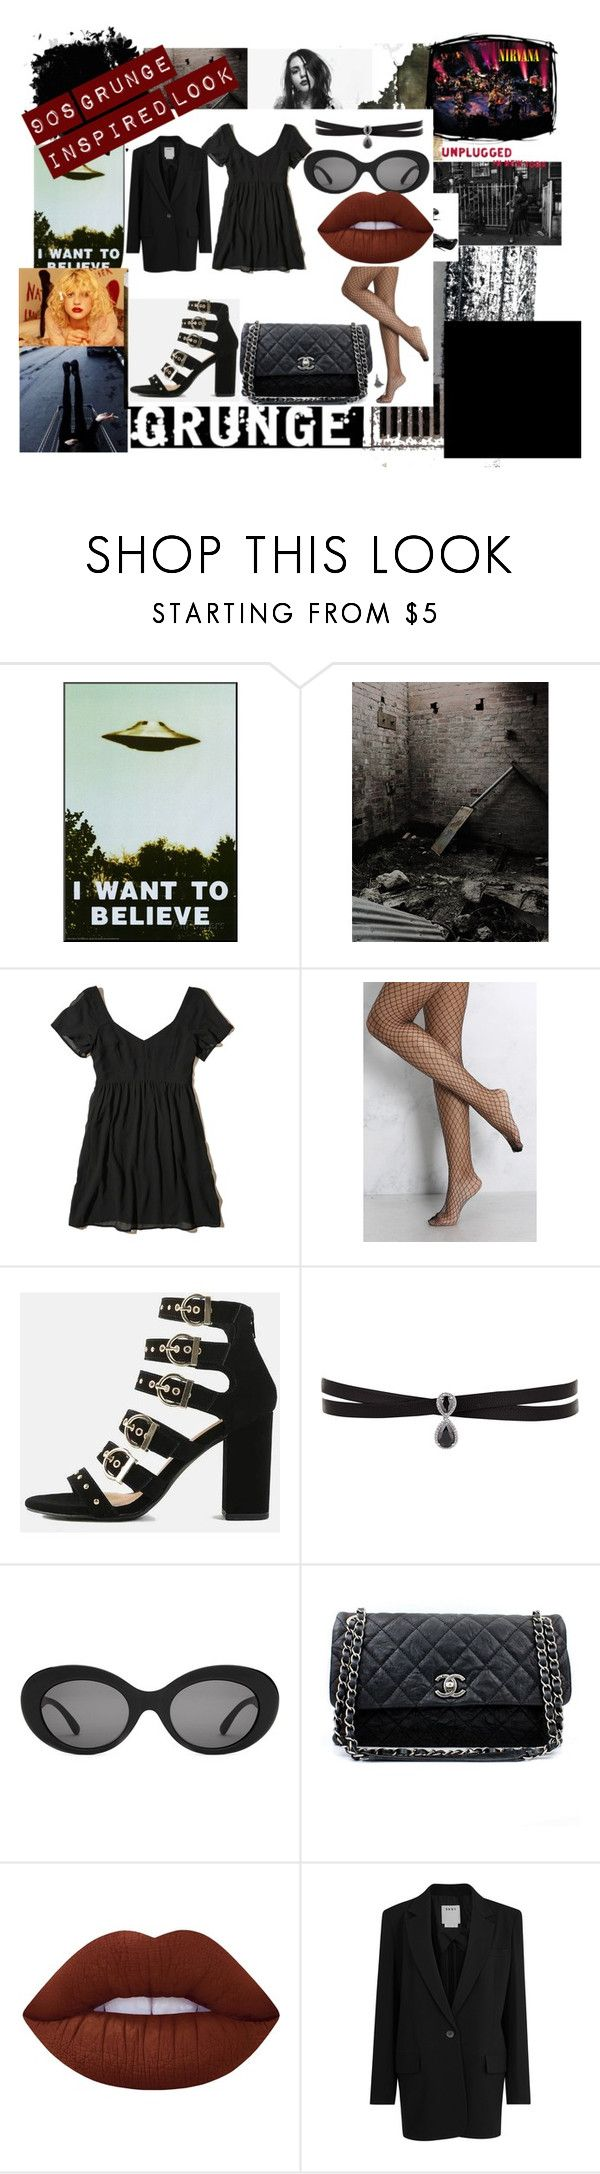 """""""90s grunge inspired look"""" by rachaelmccabe on Polyvore featuring Marc Jacobs, Nasty Gal, Hollister Co., Rare London, Fallon, Chanel, Lime Crime and DKNY"""